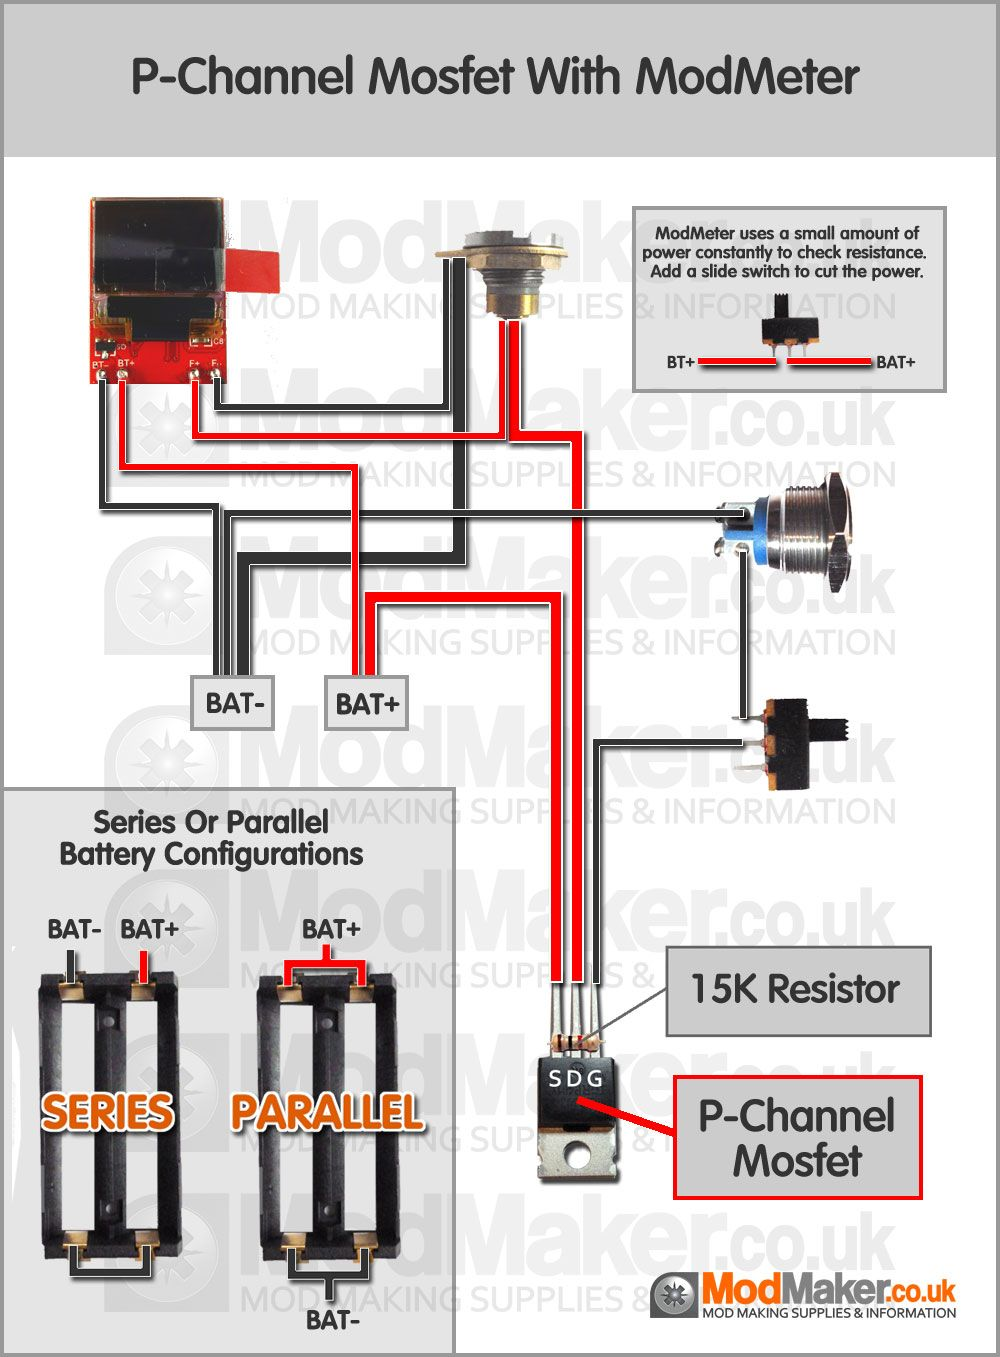 P-Channel Mosfet With ModMeter | Informatique, BricolagePinterest